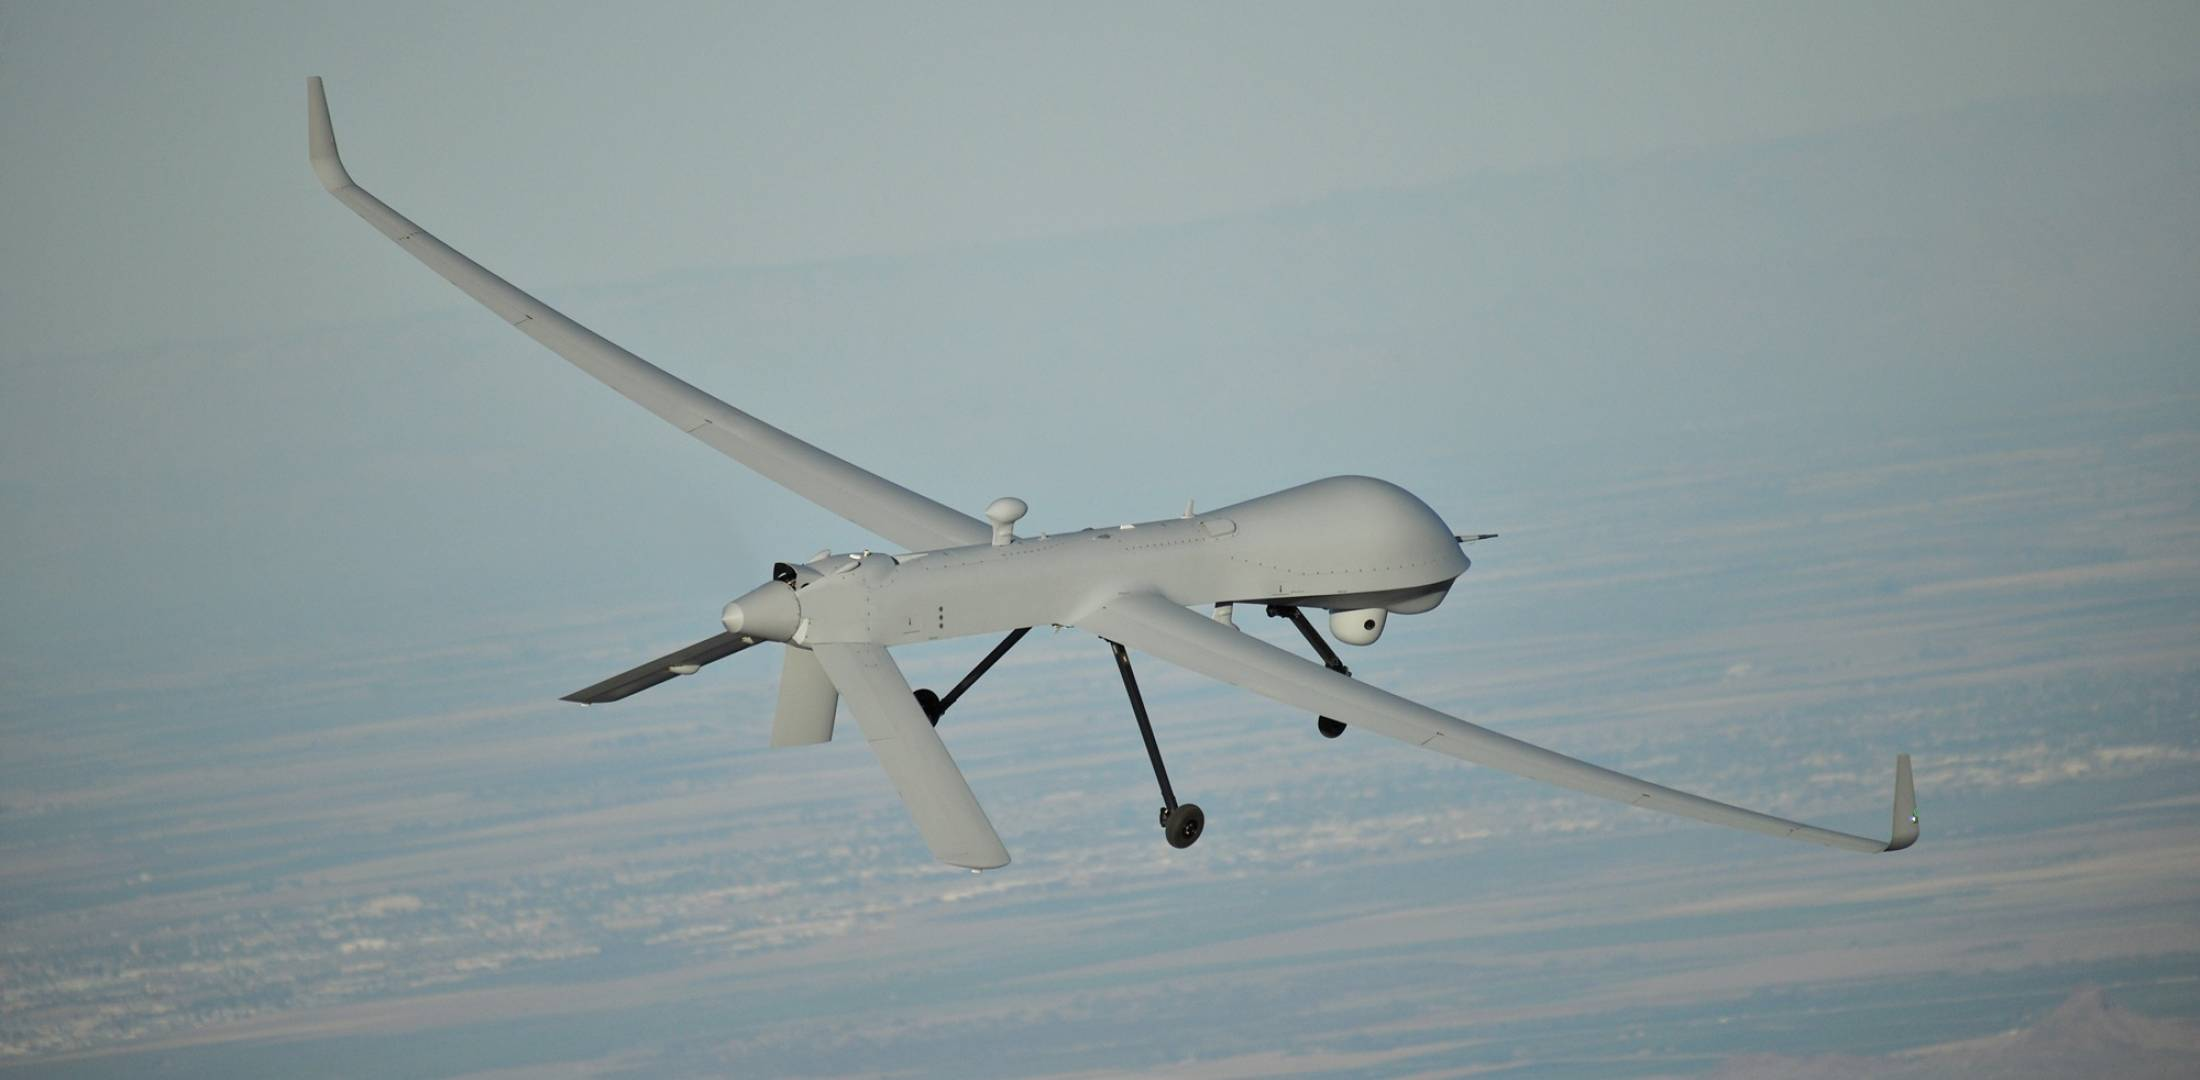 General Atomics Predator XP